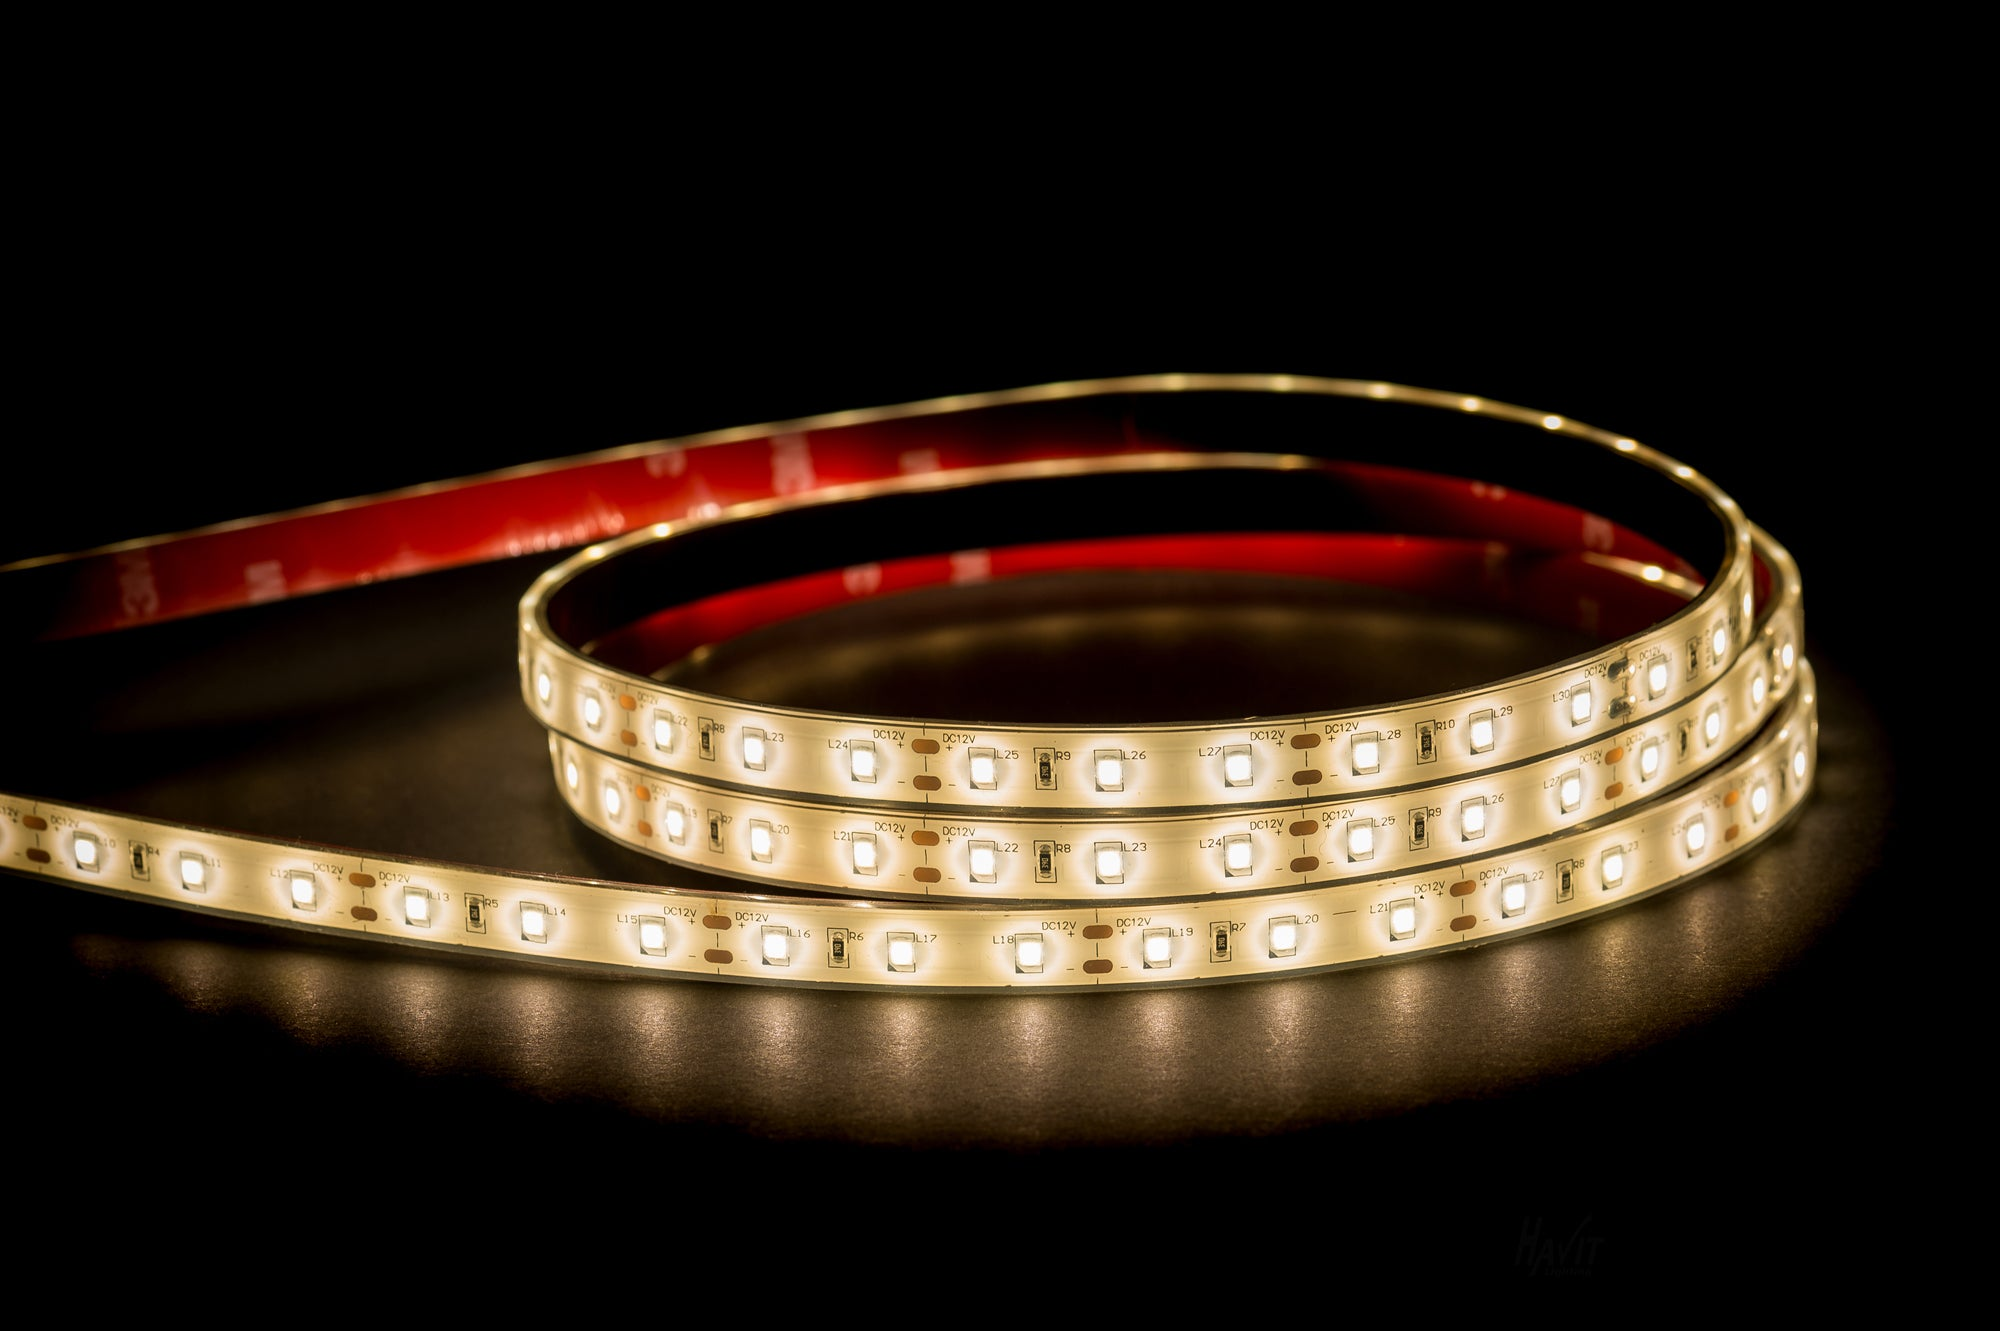 HV9783-IP67-60-4K - 14.4w 12v DC IP67 LED Strip 4000k